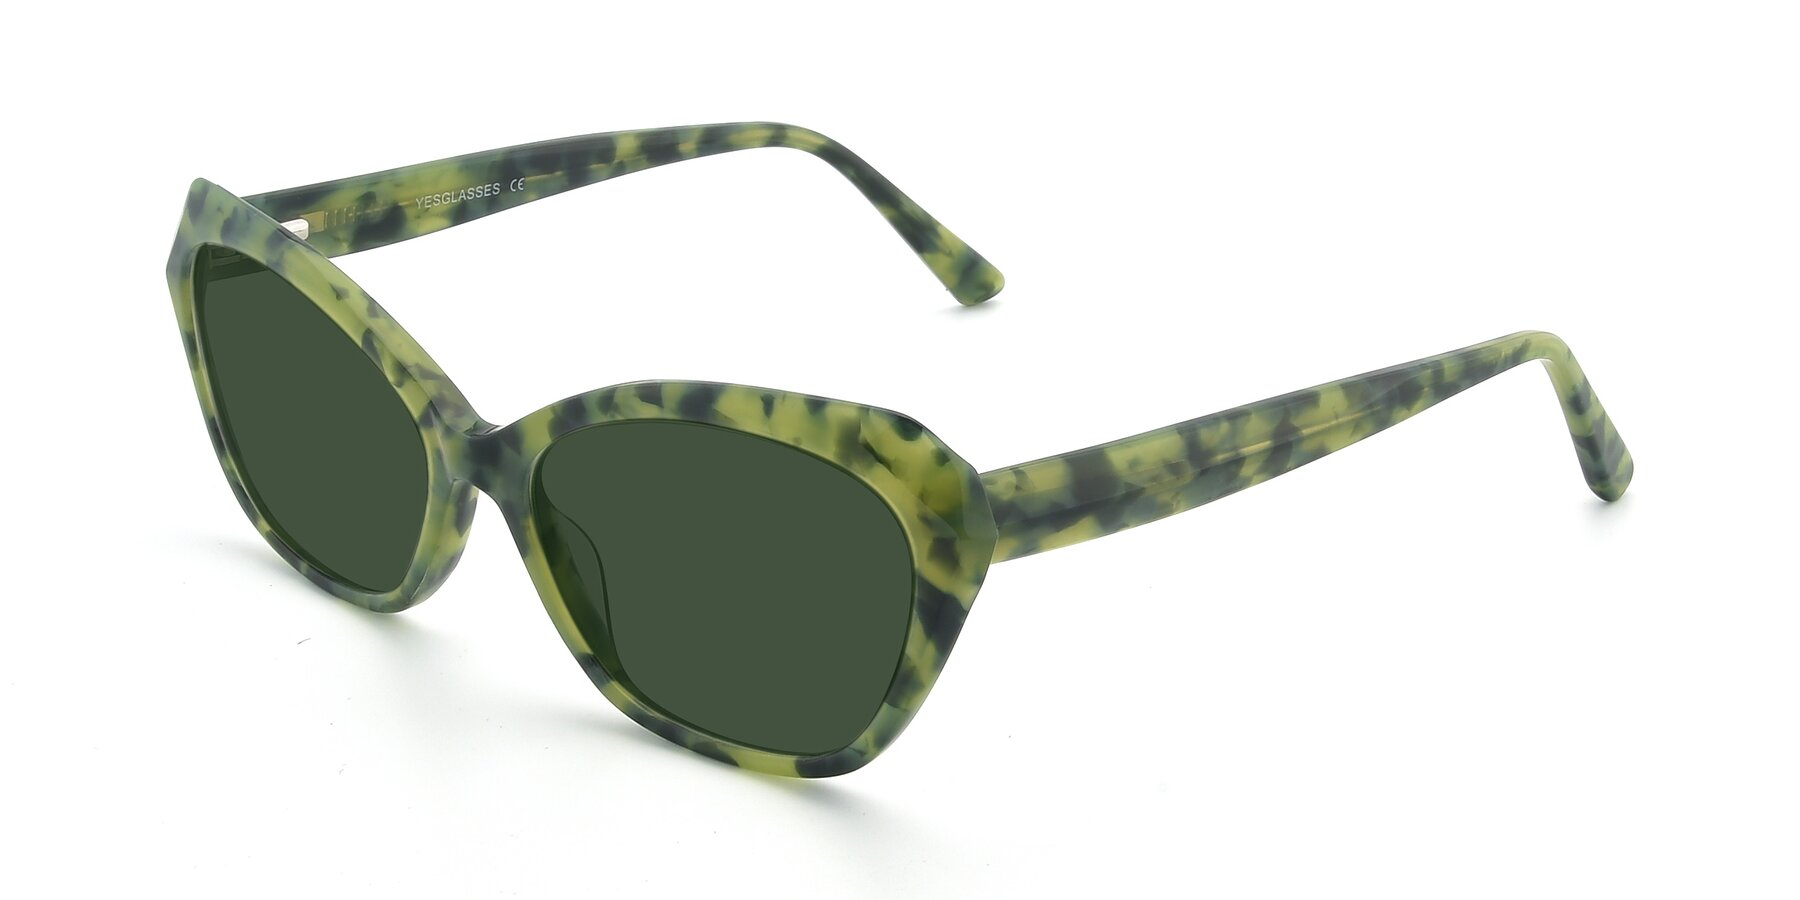 Angle of 17351 in Floral Green with Green Tinted Lenses